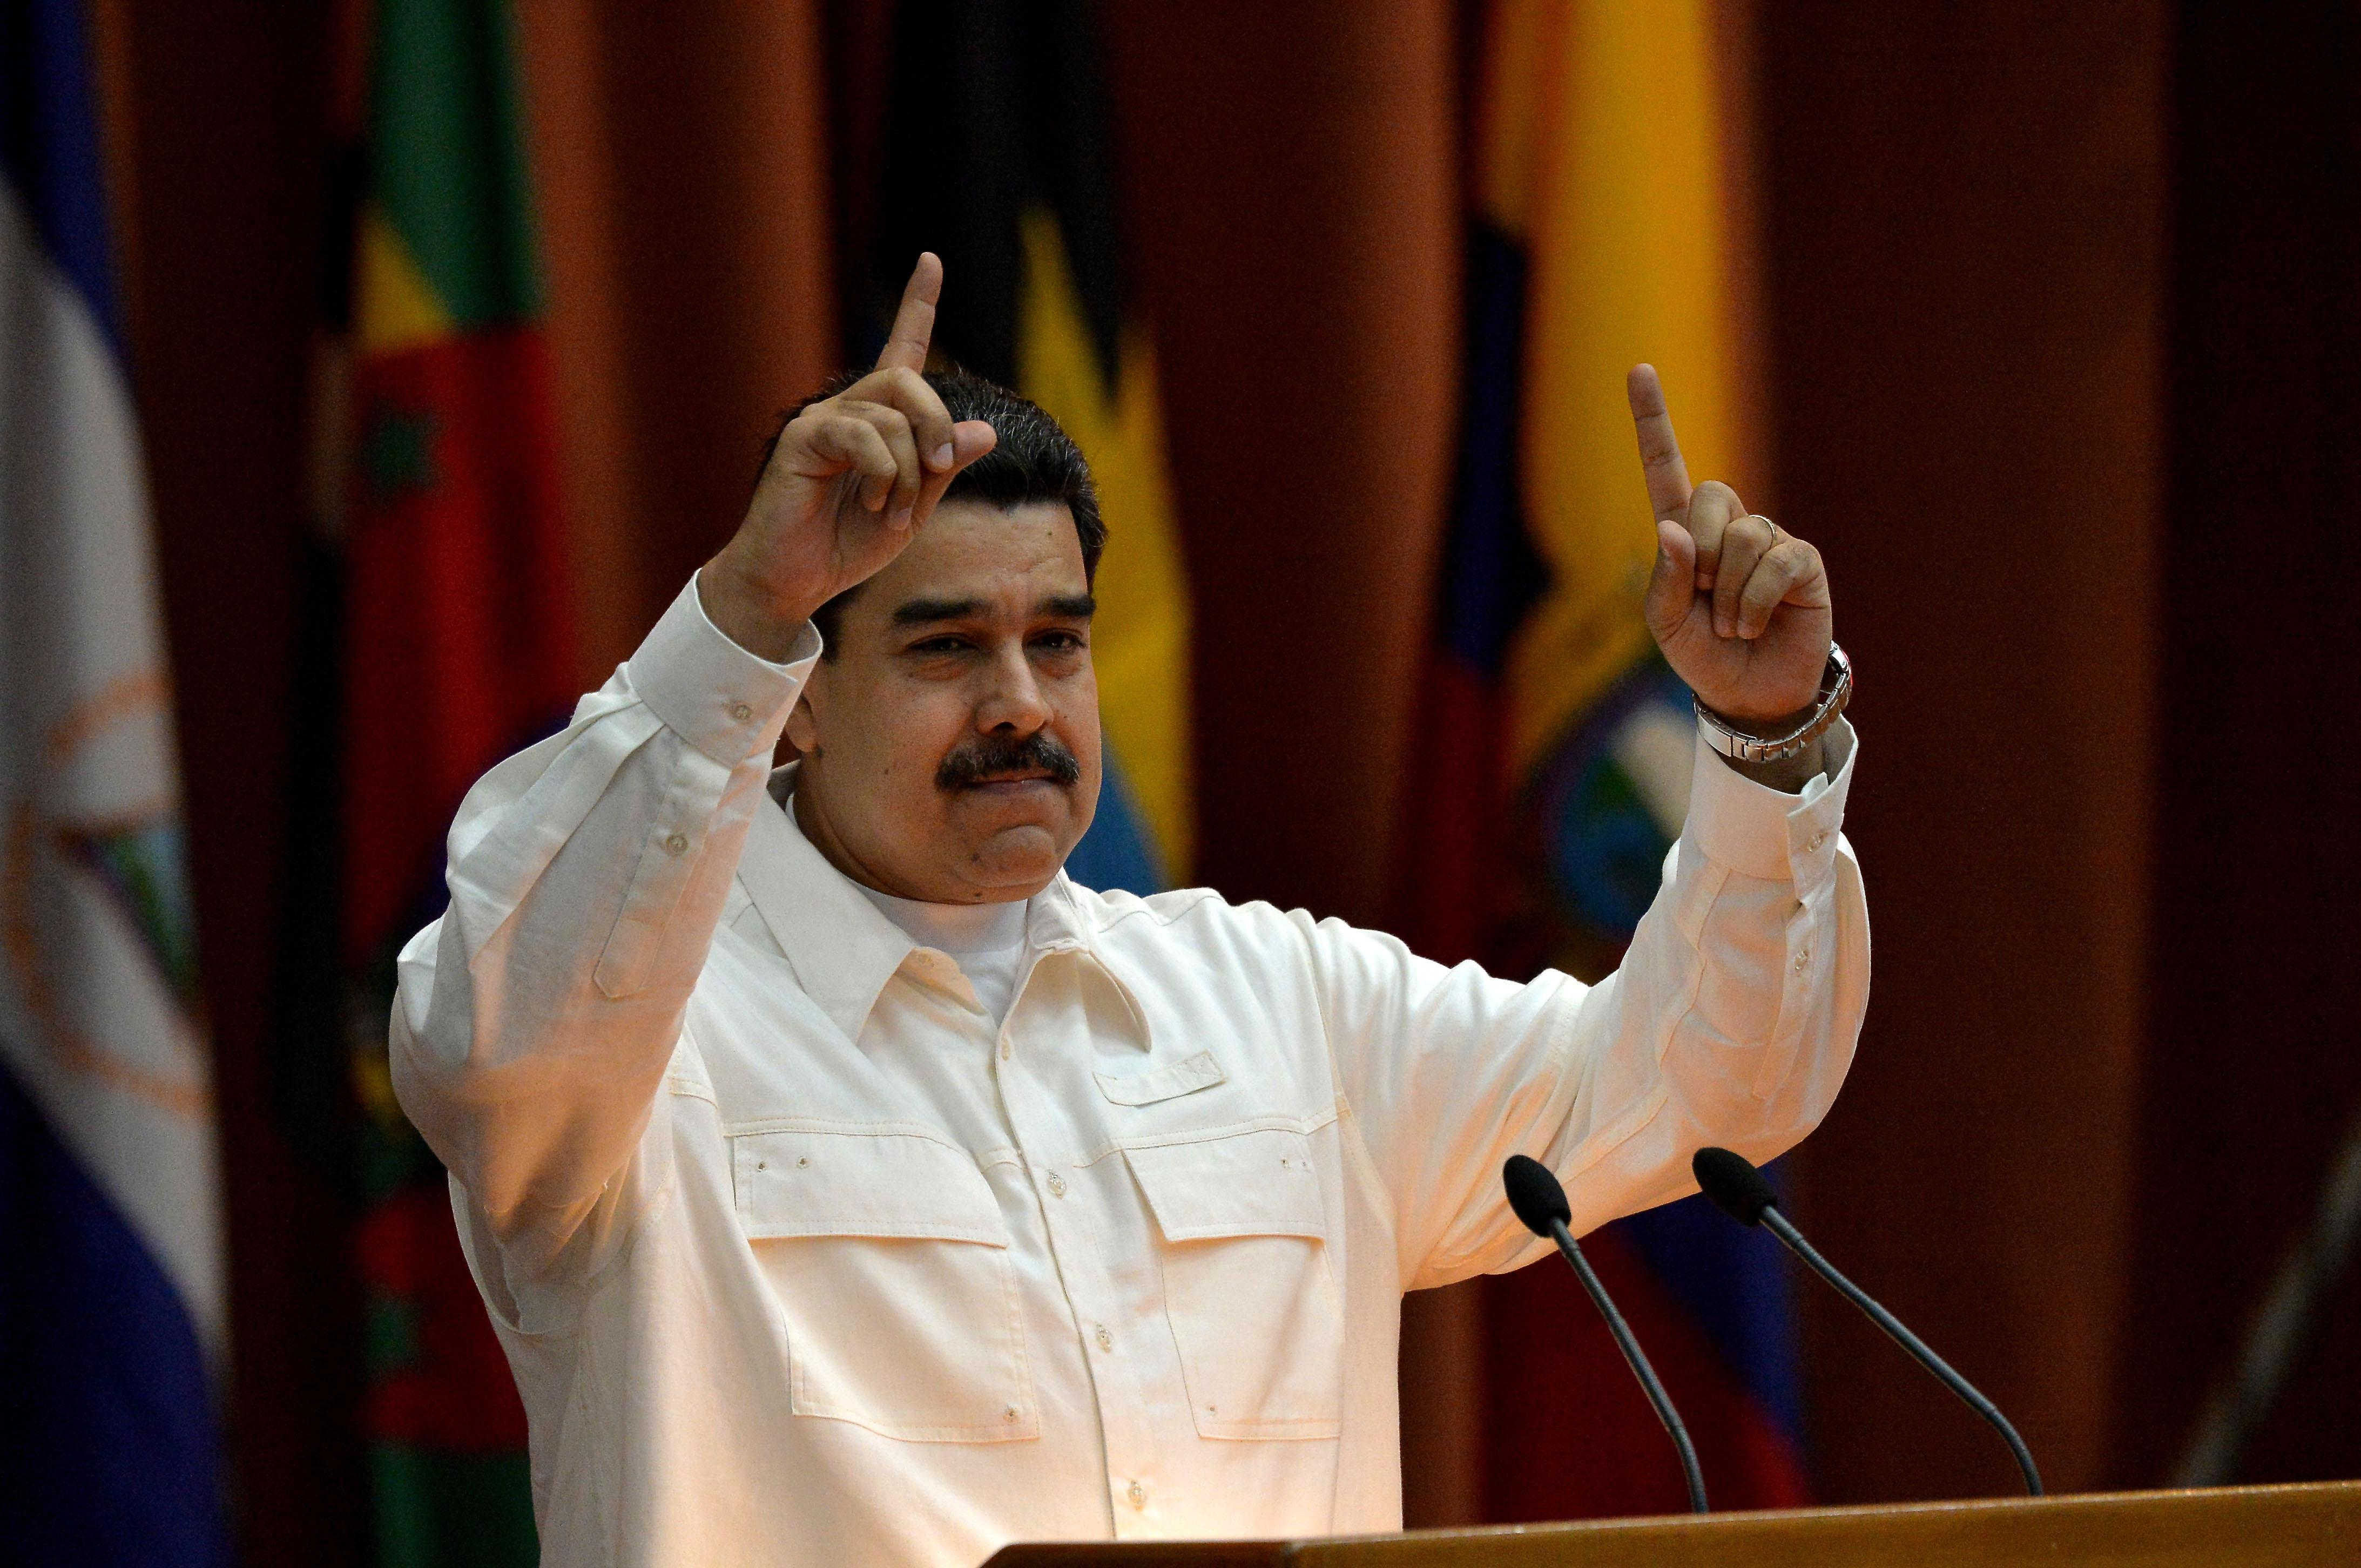 Venezuelan President Nicolas Maduro speaks at the closing ceremony of the XVI Political Council of the Bolivarian Alliance for the People of Our Americas (ALBA) at the Convention Palace in Havana, on December 14, 2017. / AFP PHOTO / YAMIL LAGE